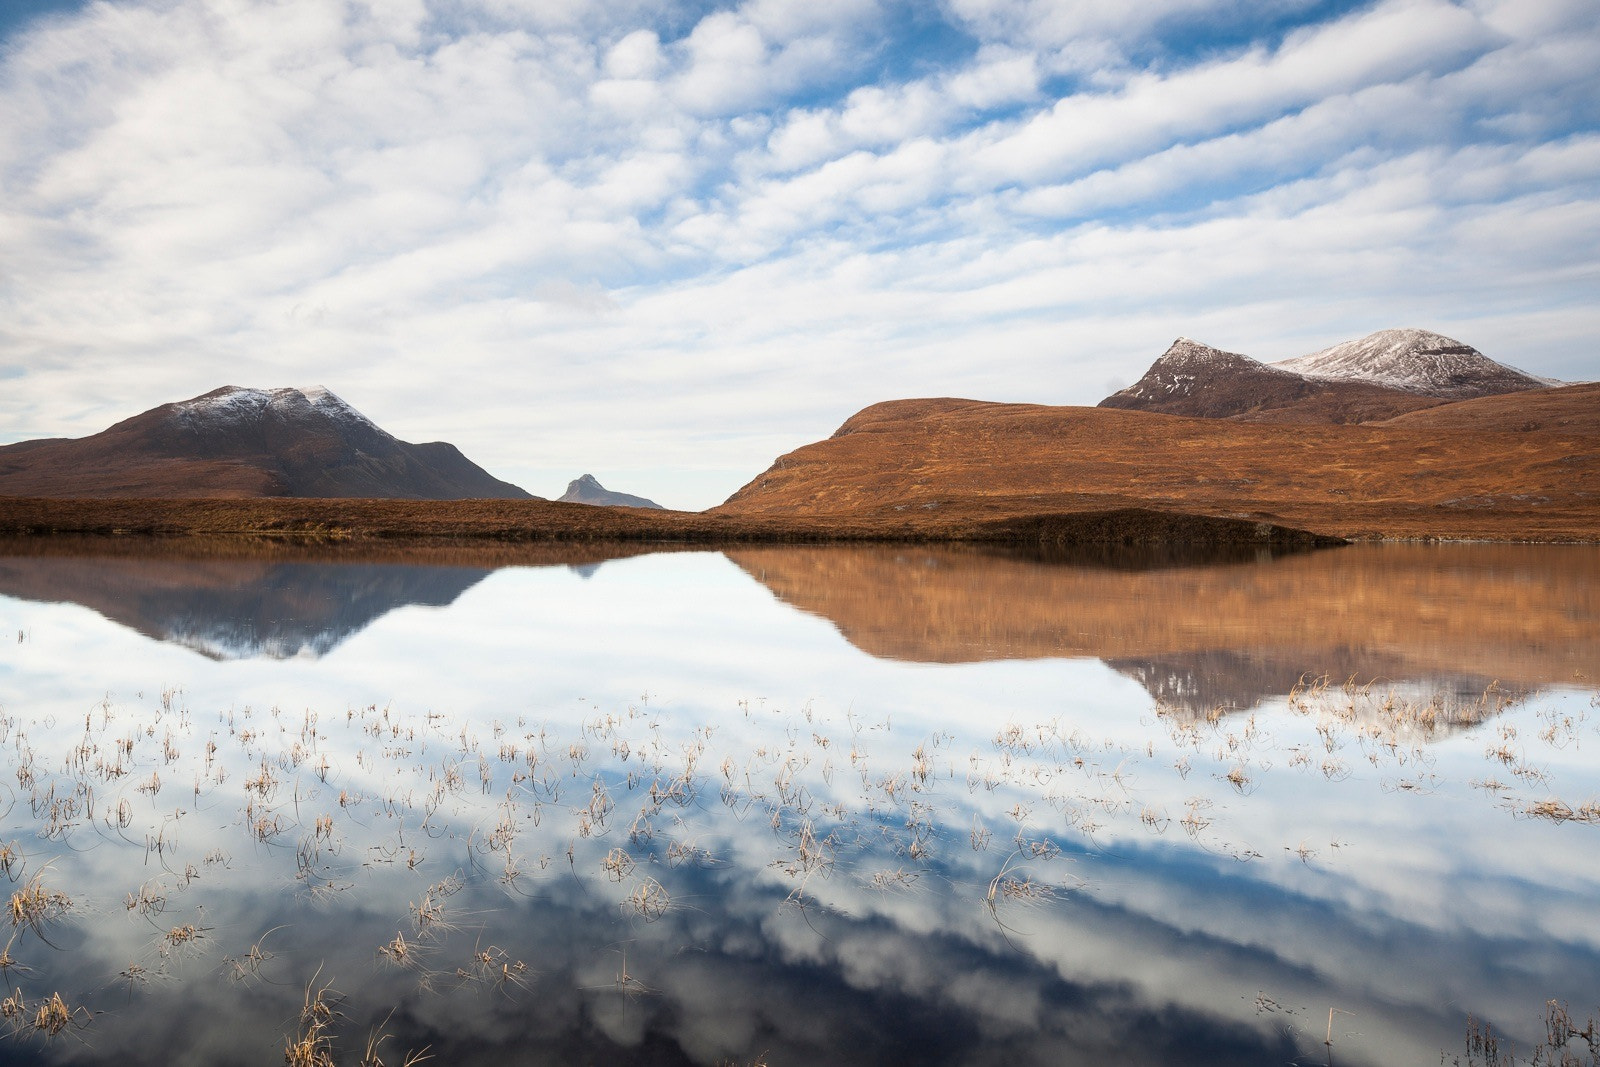 Photograph Mirror mountains i by Terry Gibbins on 500px